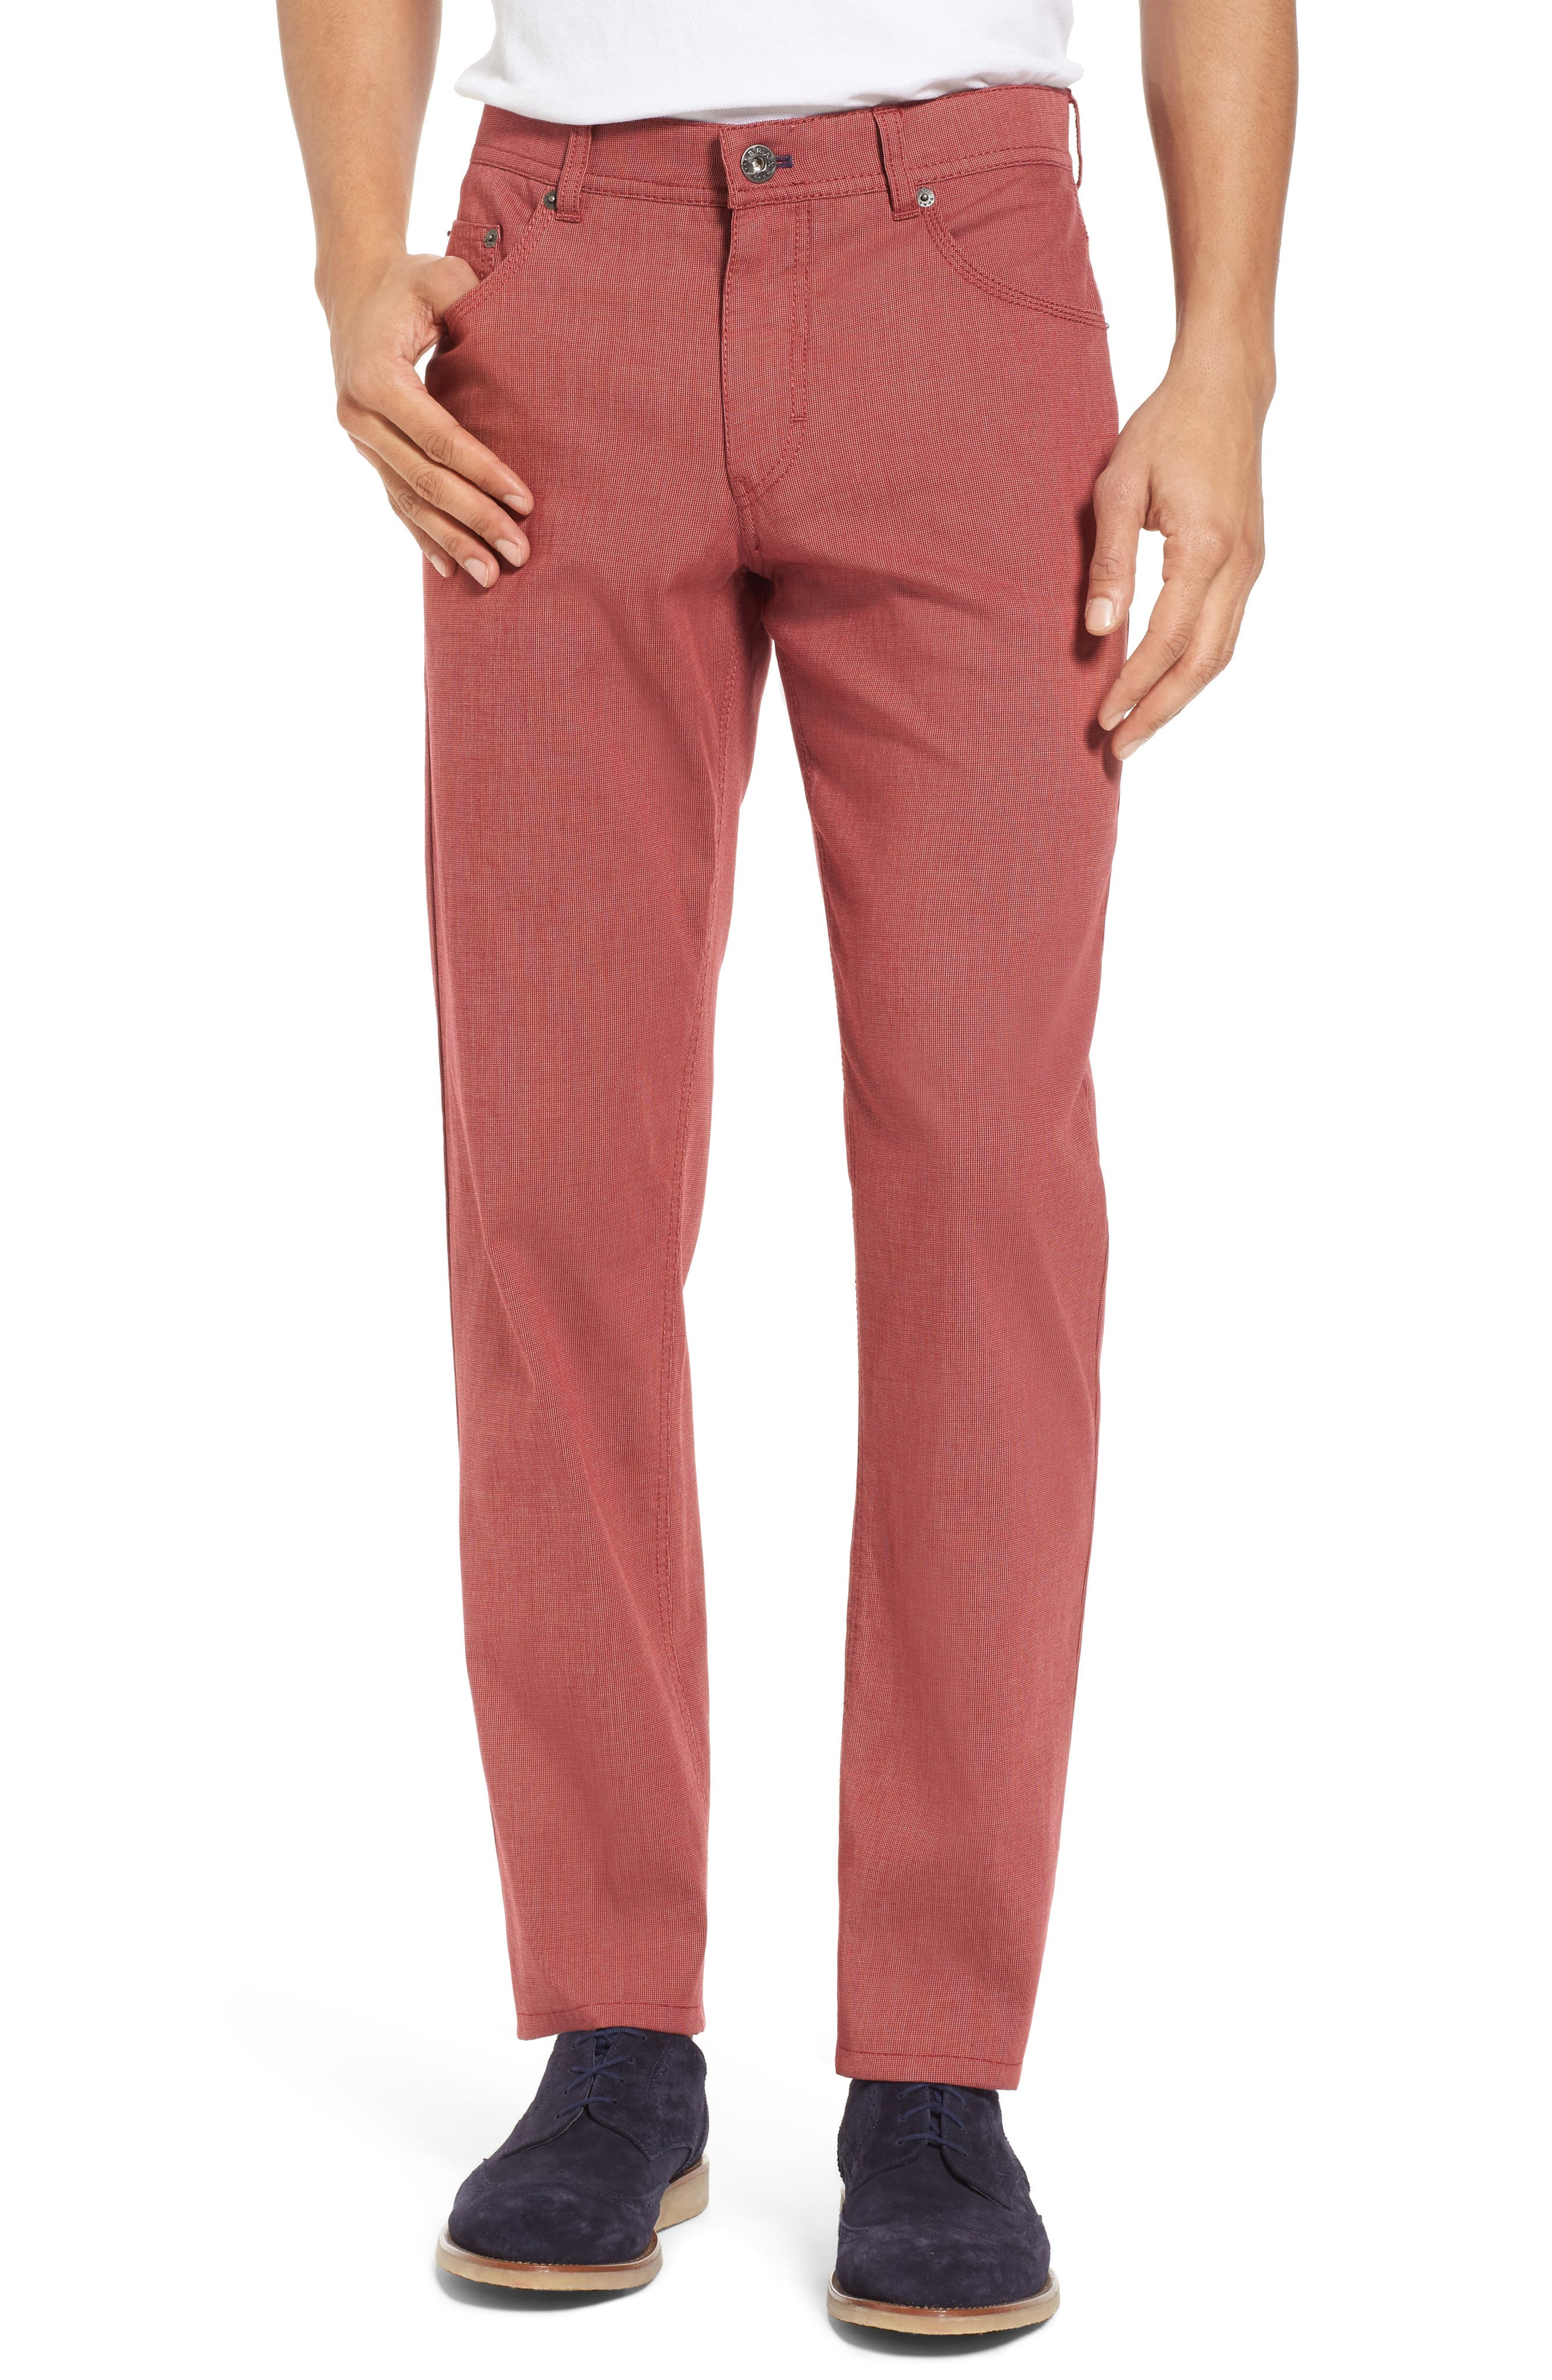 Sensation Stretch Trousers,                             Main thumbnail 1, color,                             Red